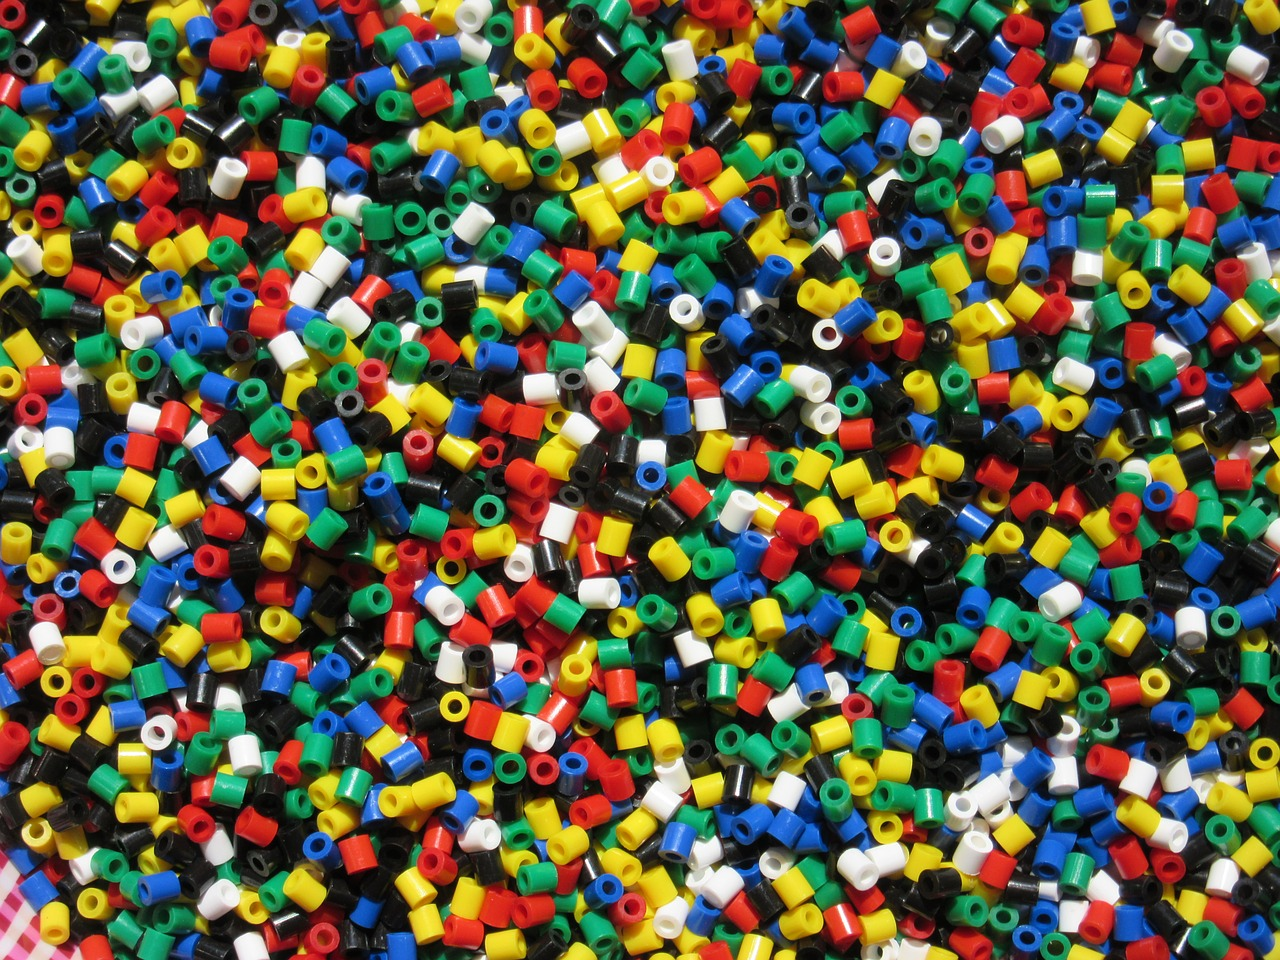 billes de plastique multicolore